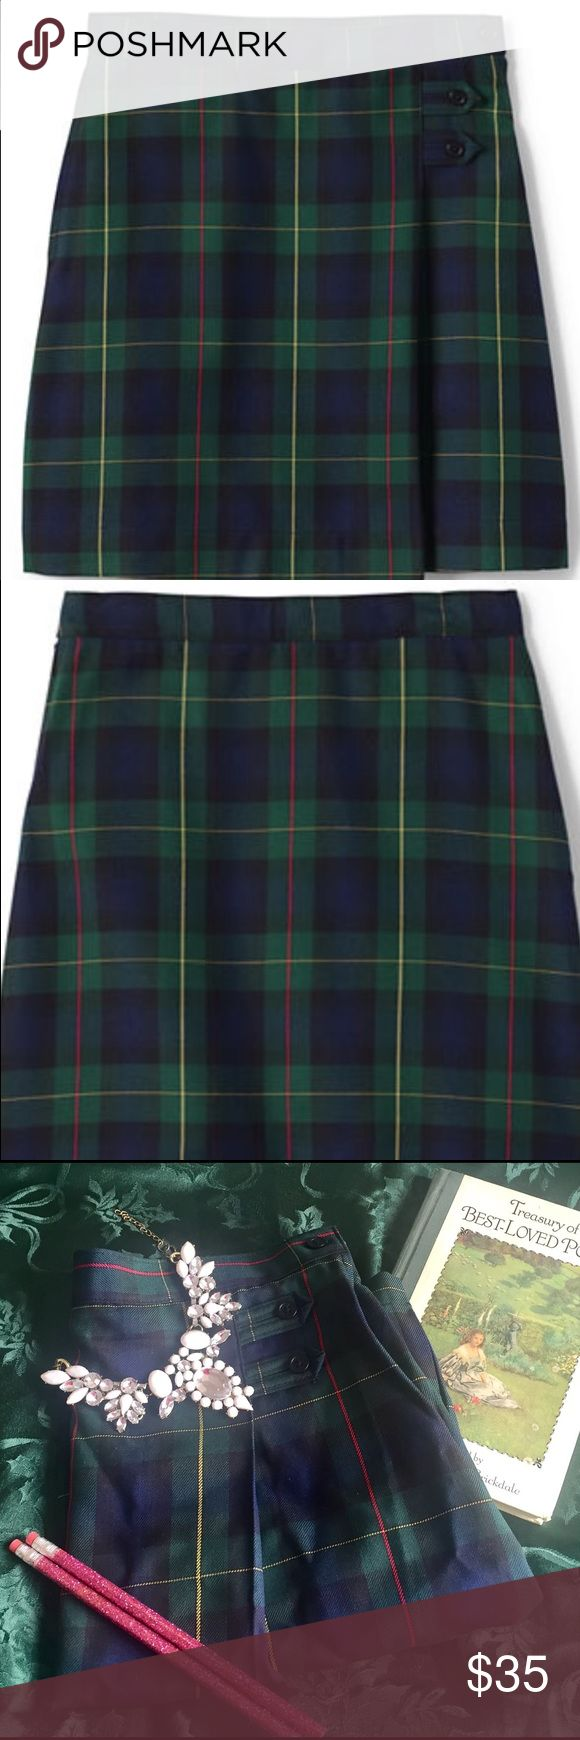 CCO SALE Lands' End school Uniform Plaid 3 Hunter New from Lands' End School Uniform Jr Plaid A-line Skirt Below the Knee color is Hunter Cl  Navy Plaid This is new without tag ordered from Lands' End with bag junior size 3 style 404344 Lands' End Skirts Midi